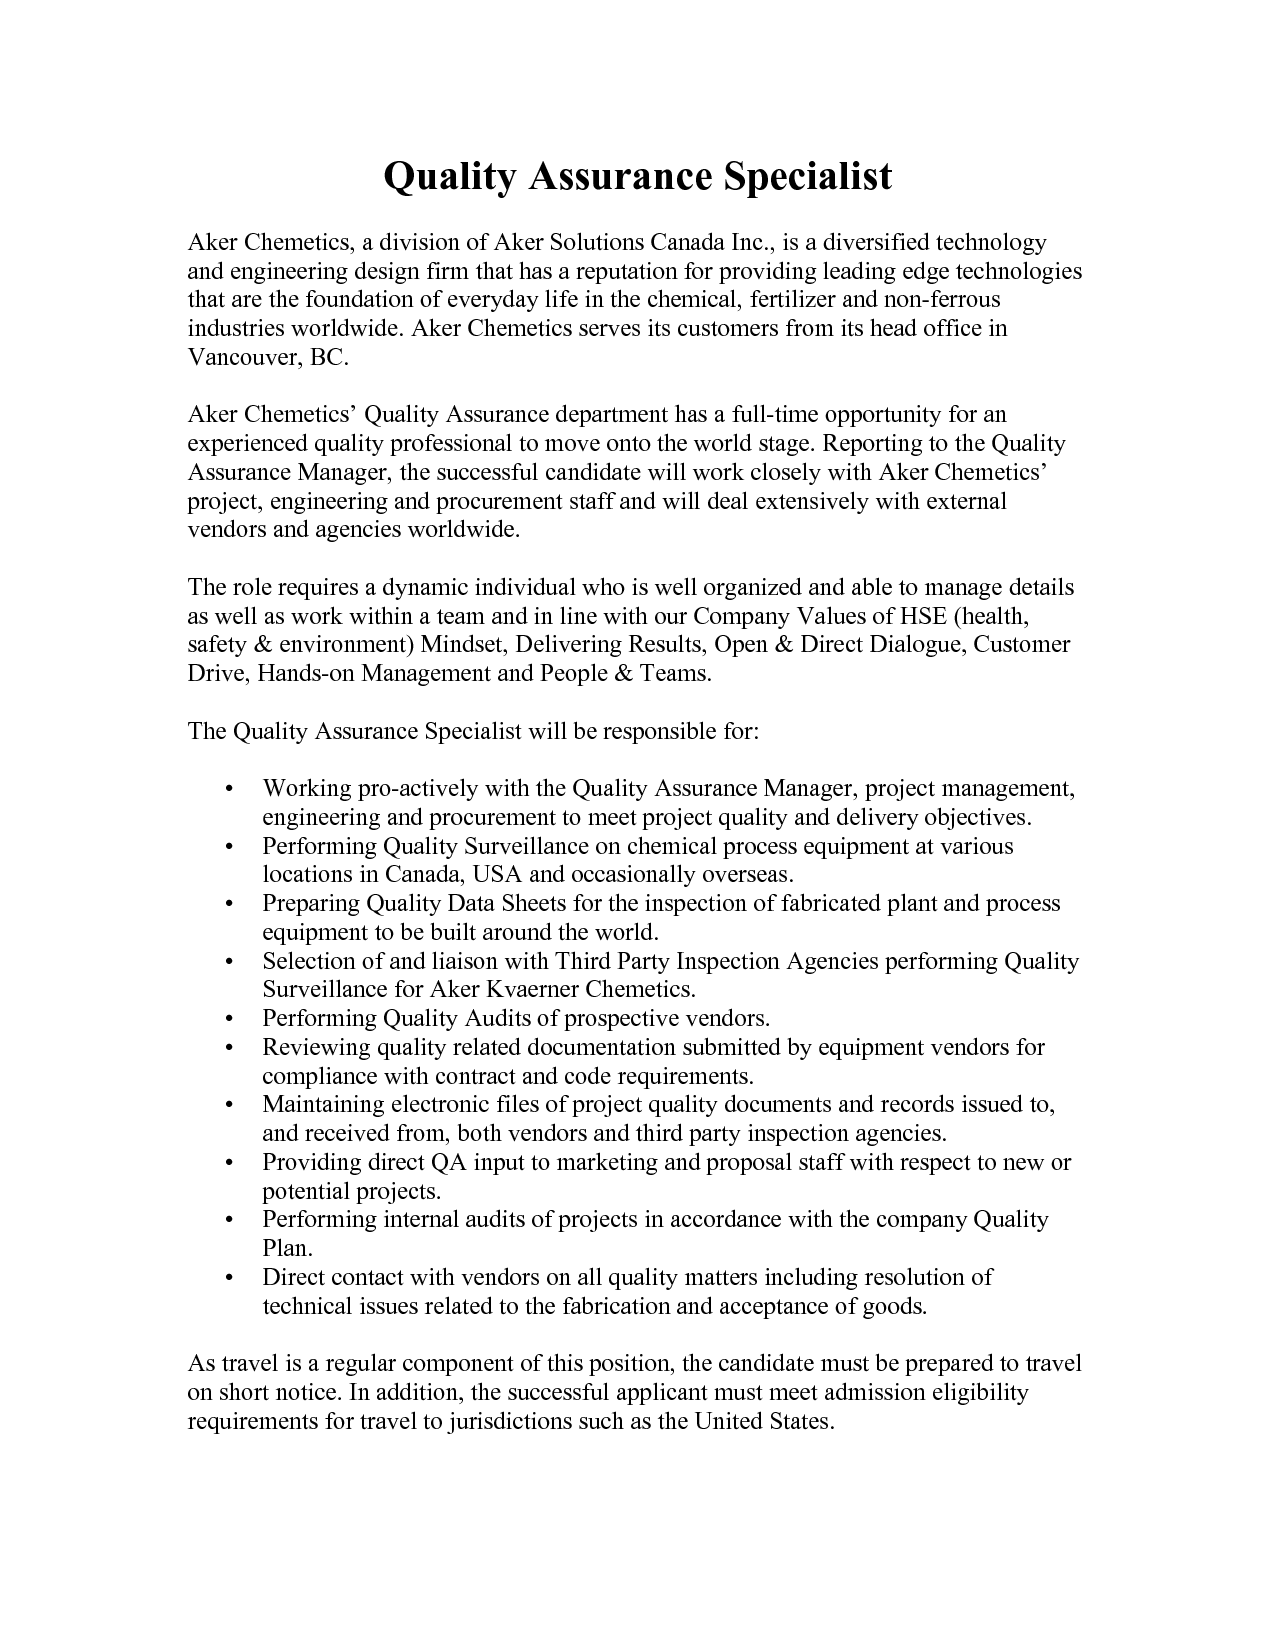 Investment Banking Cover Letter No Experience Banking Cover Letter Examples Banking Manager